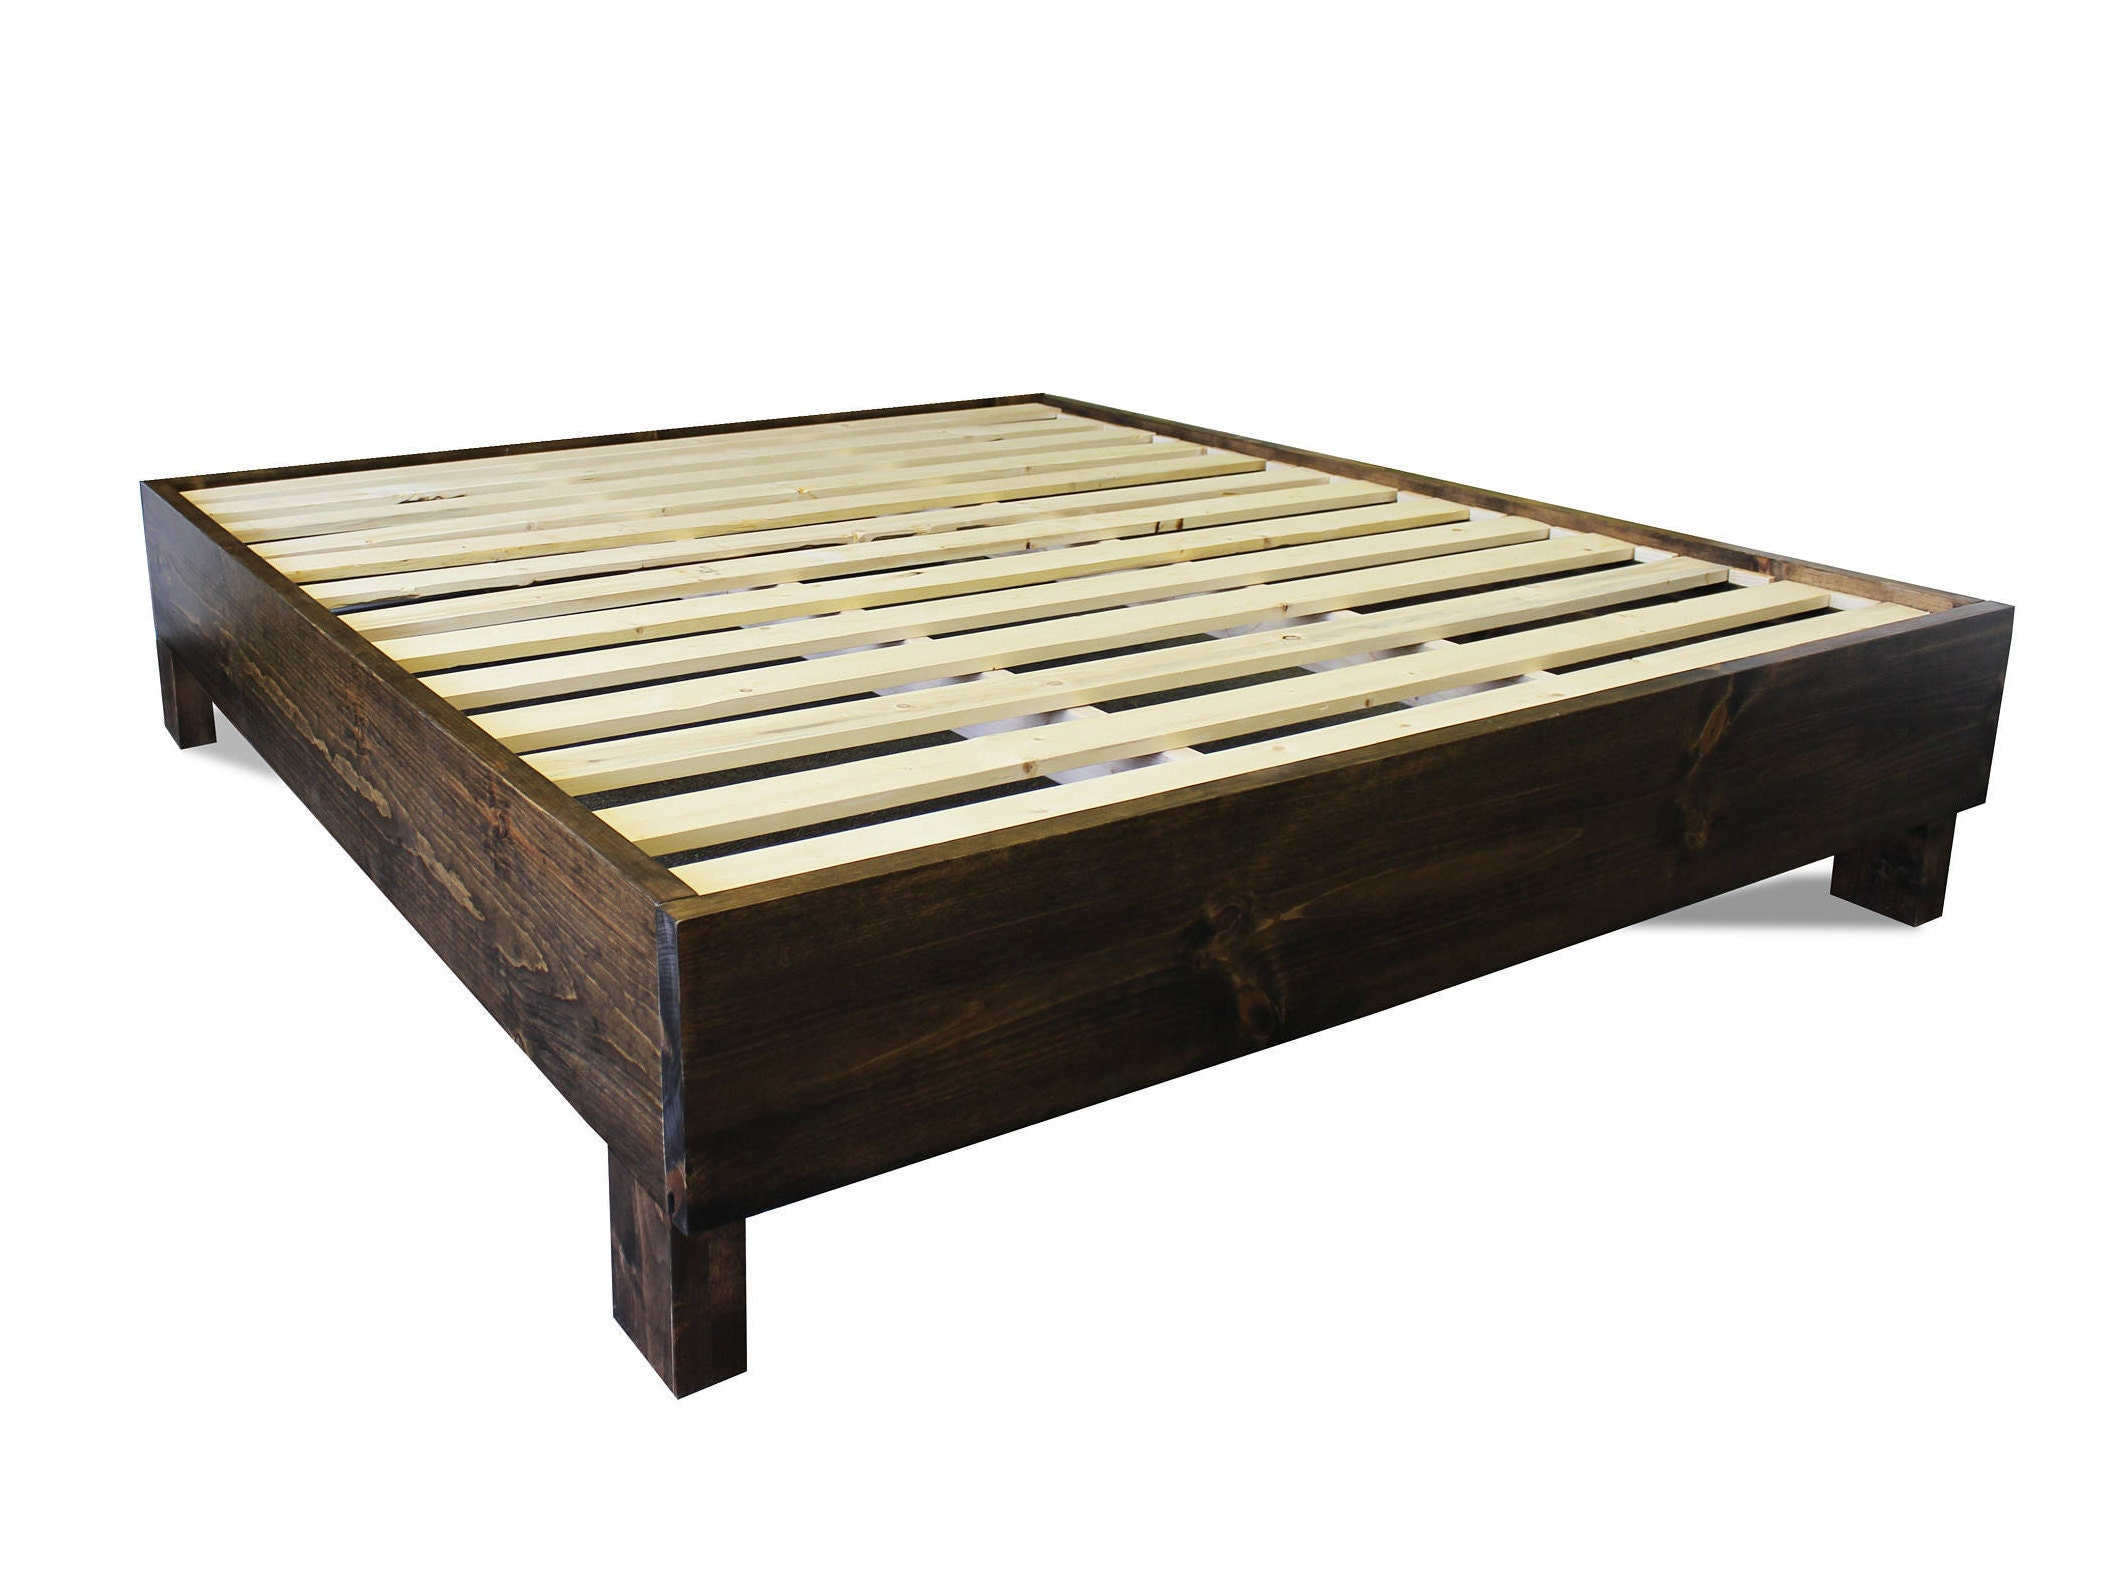 Rustic platform bed frame old world reclaimed wood style - Bed frame styles types ...